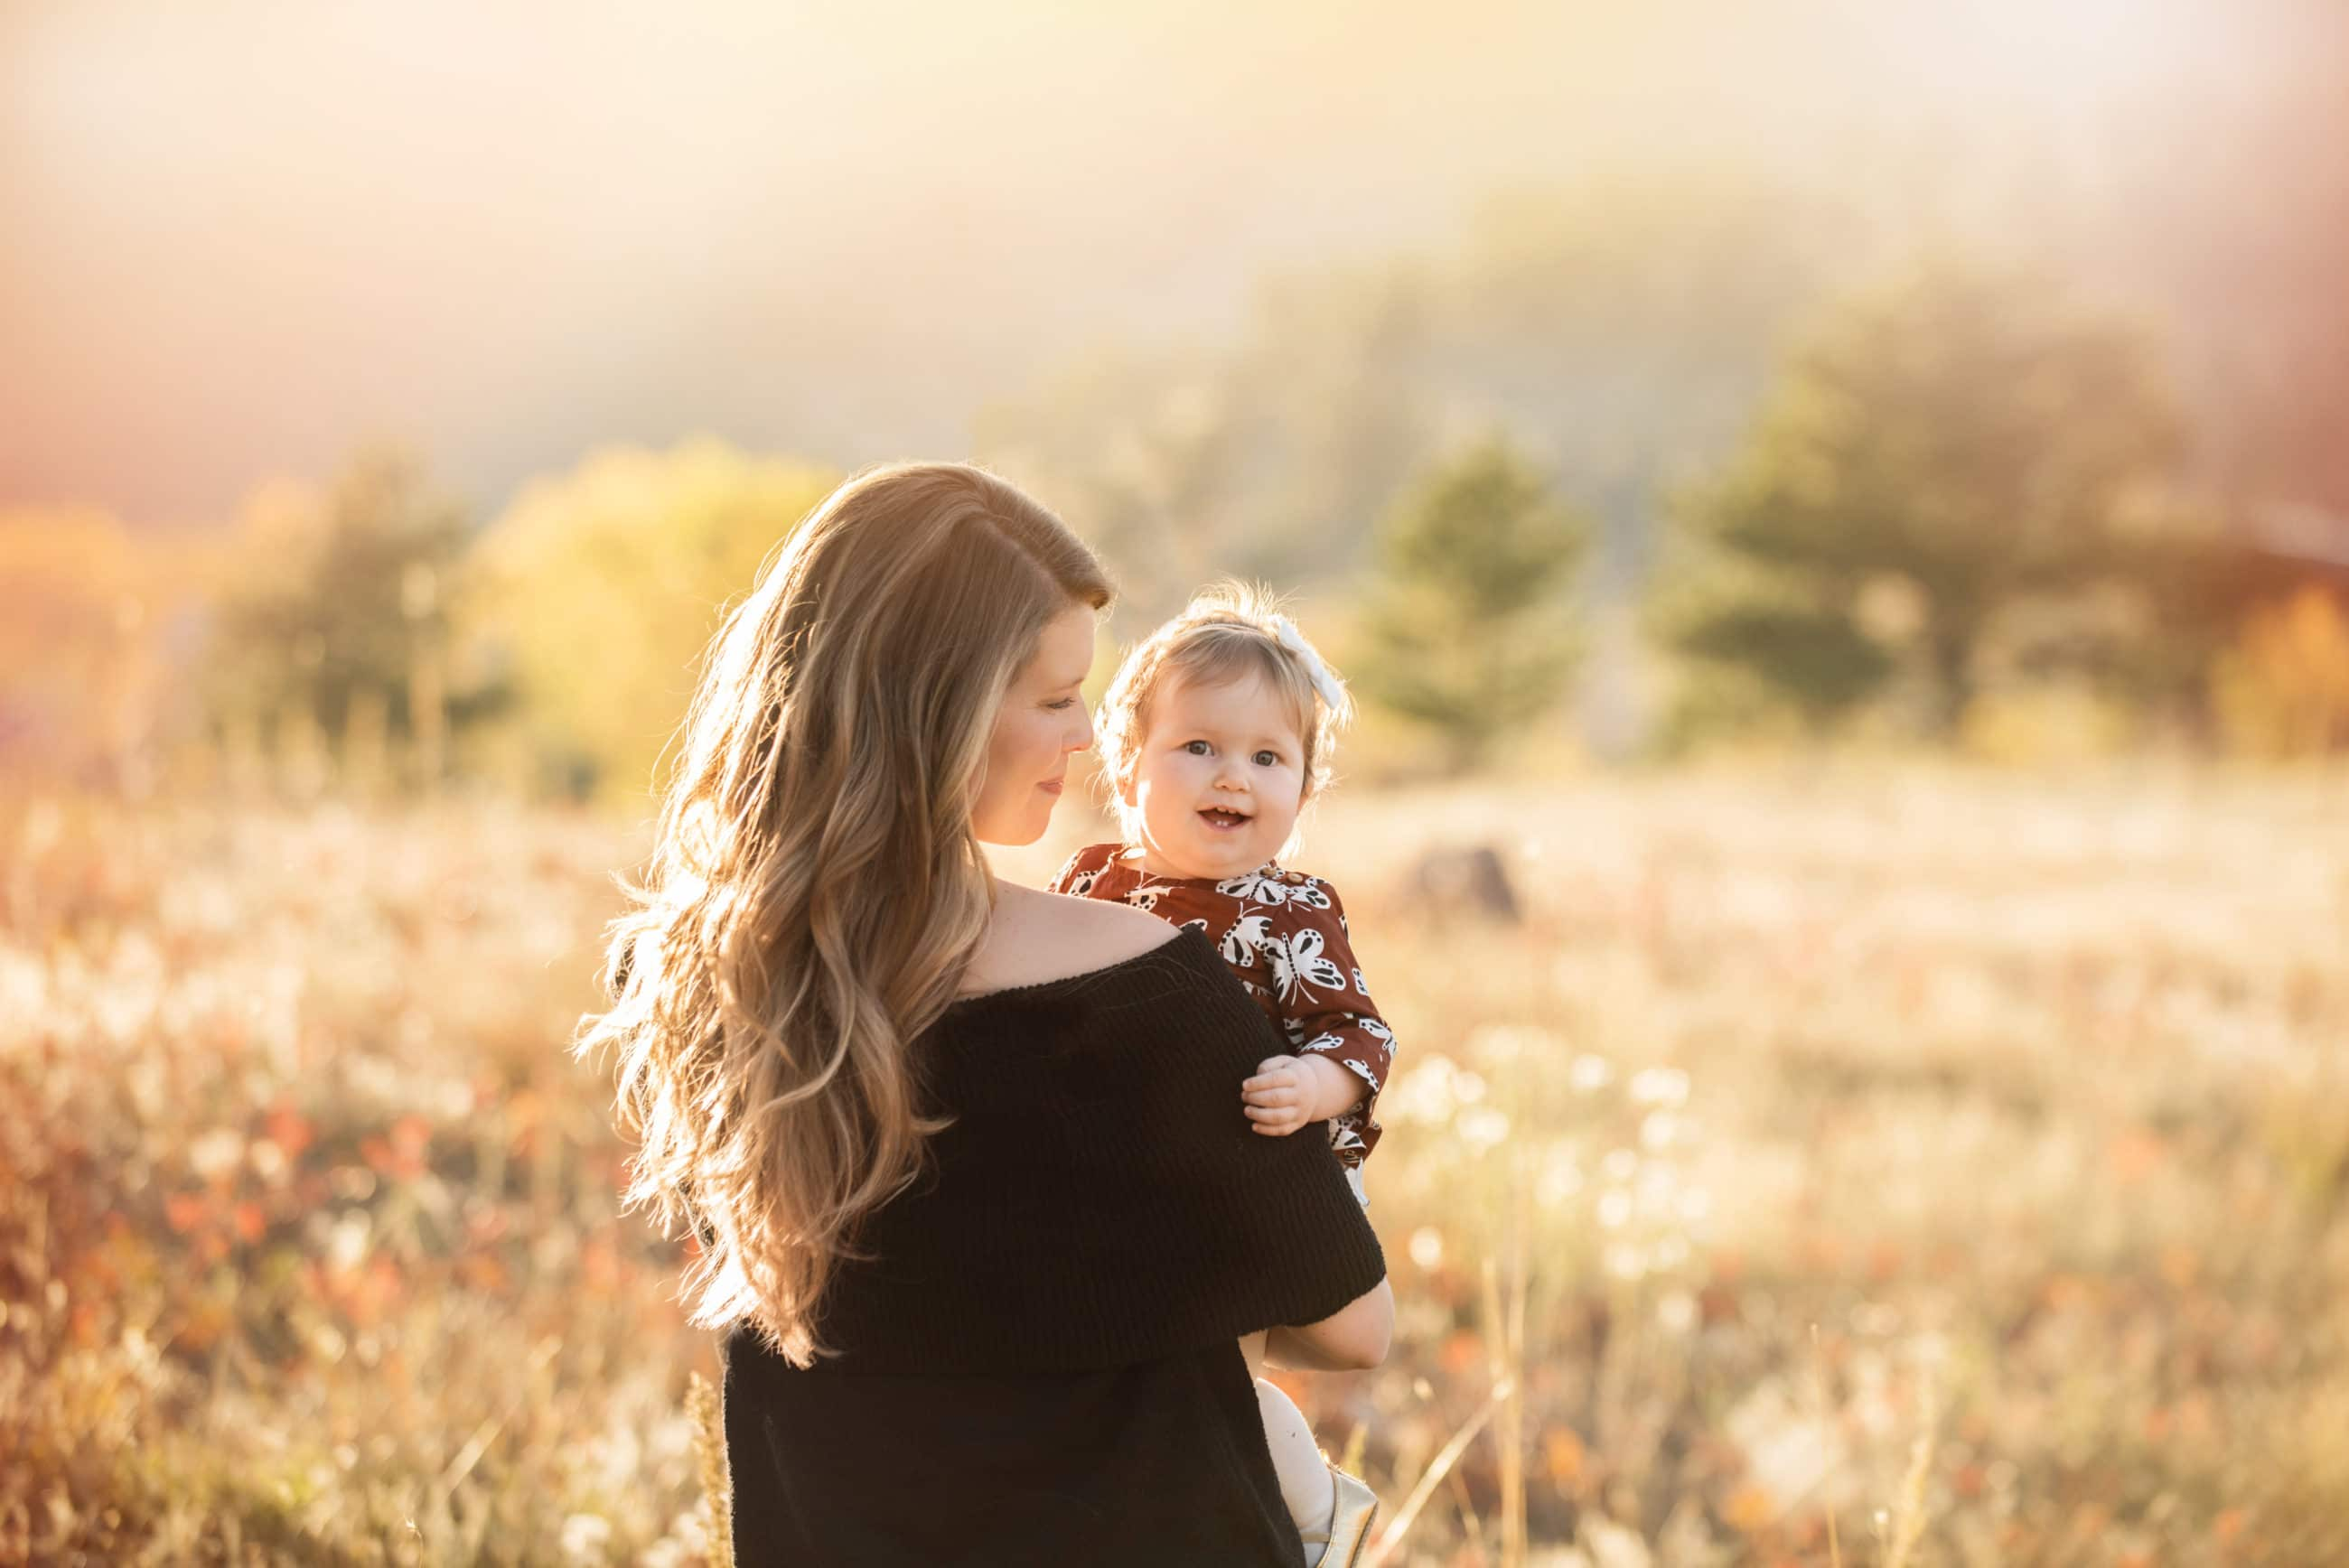 mother and little girl in a golden field at sunset with backlight - highlands ranch photographer